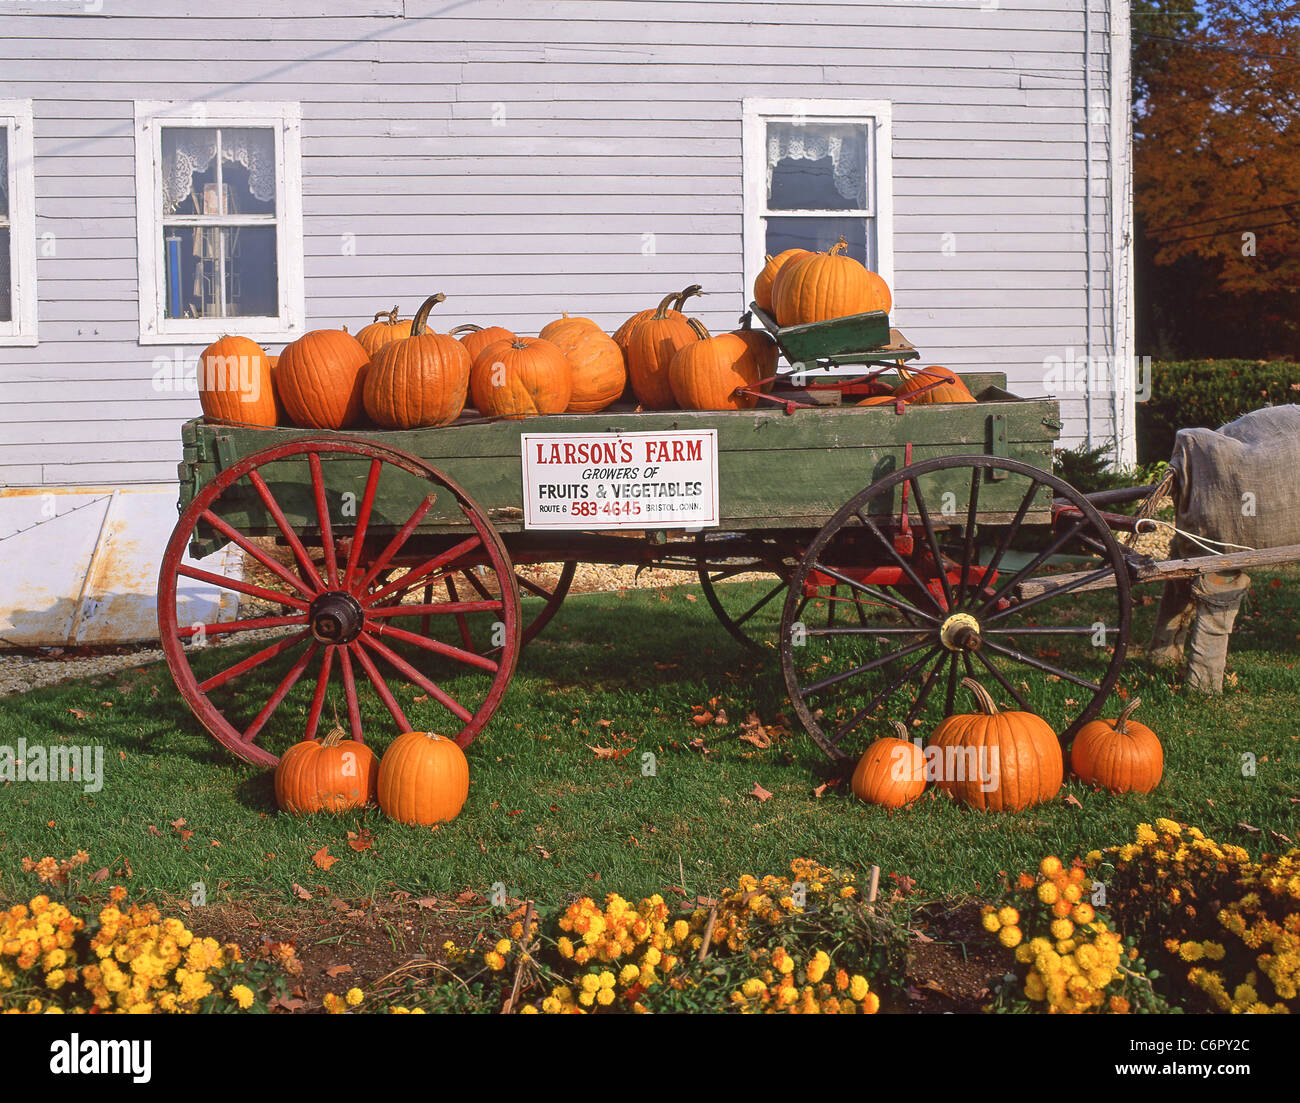 Halloween pumpkin roadside stall, Connecticut, United States of America - Stock Image